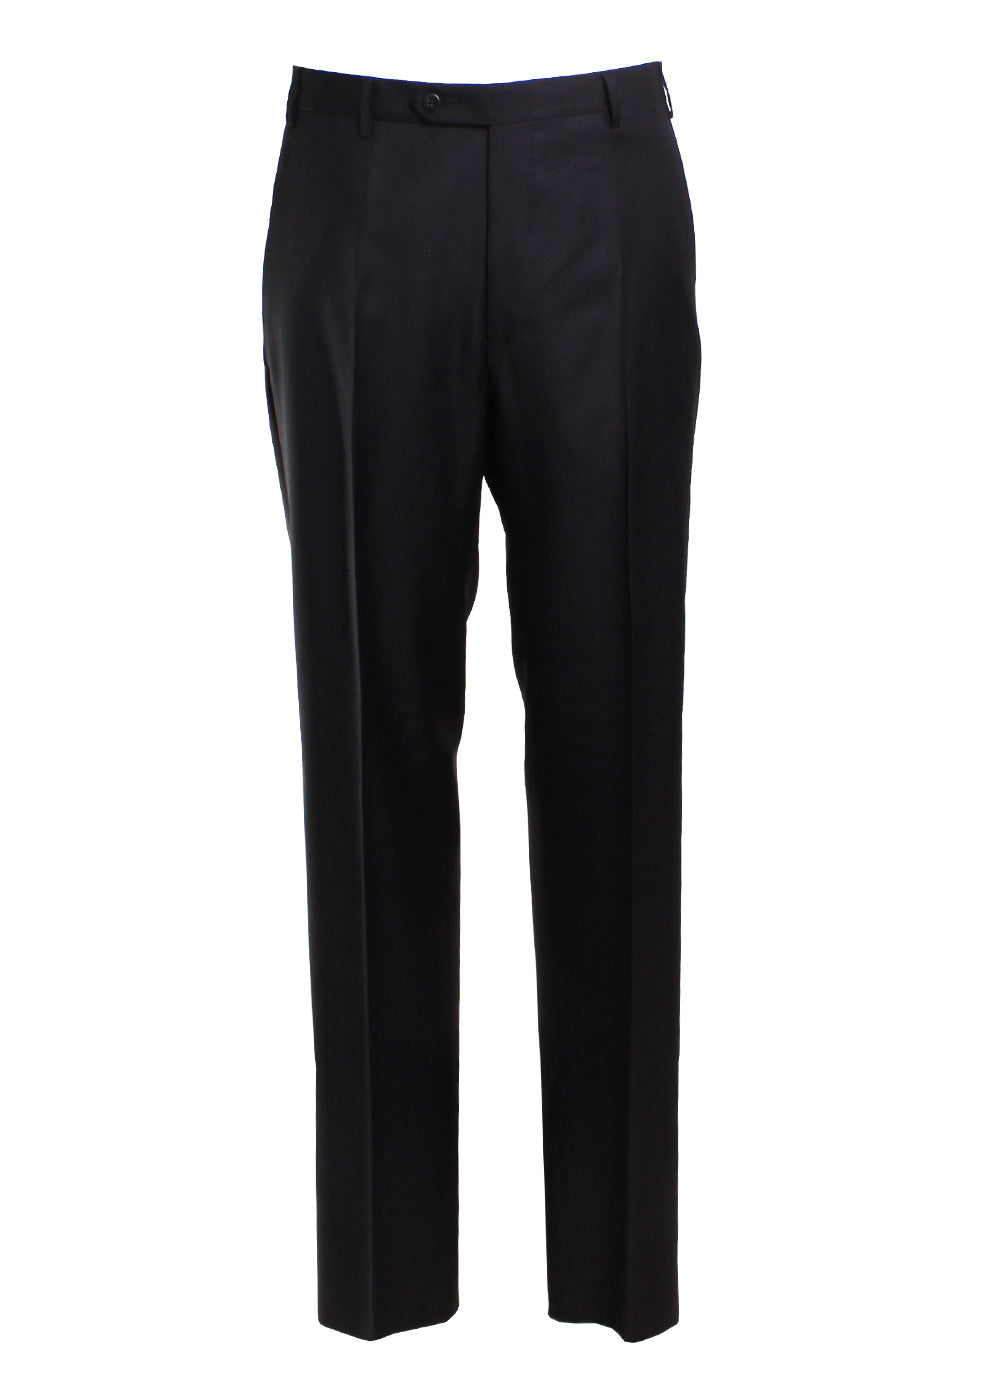 Zanella Todd Flat Front Trousers in Black